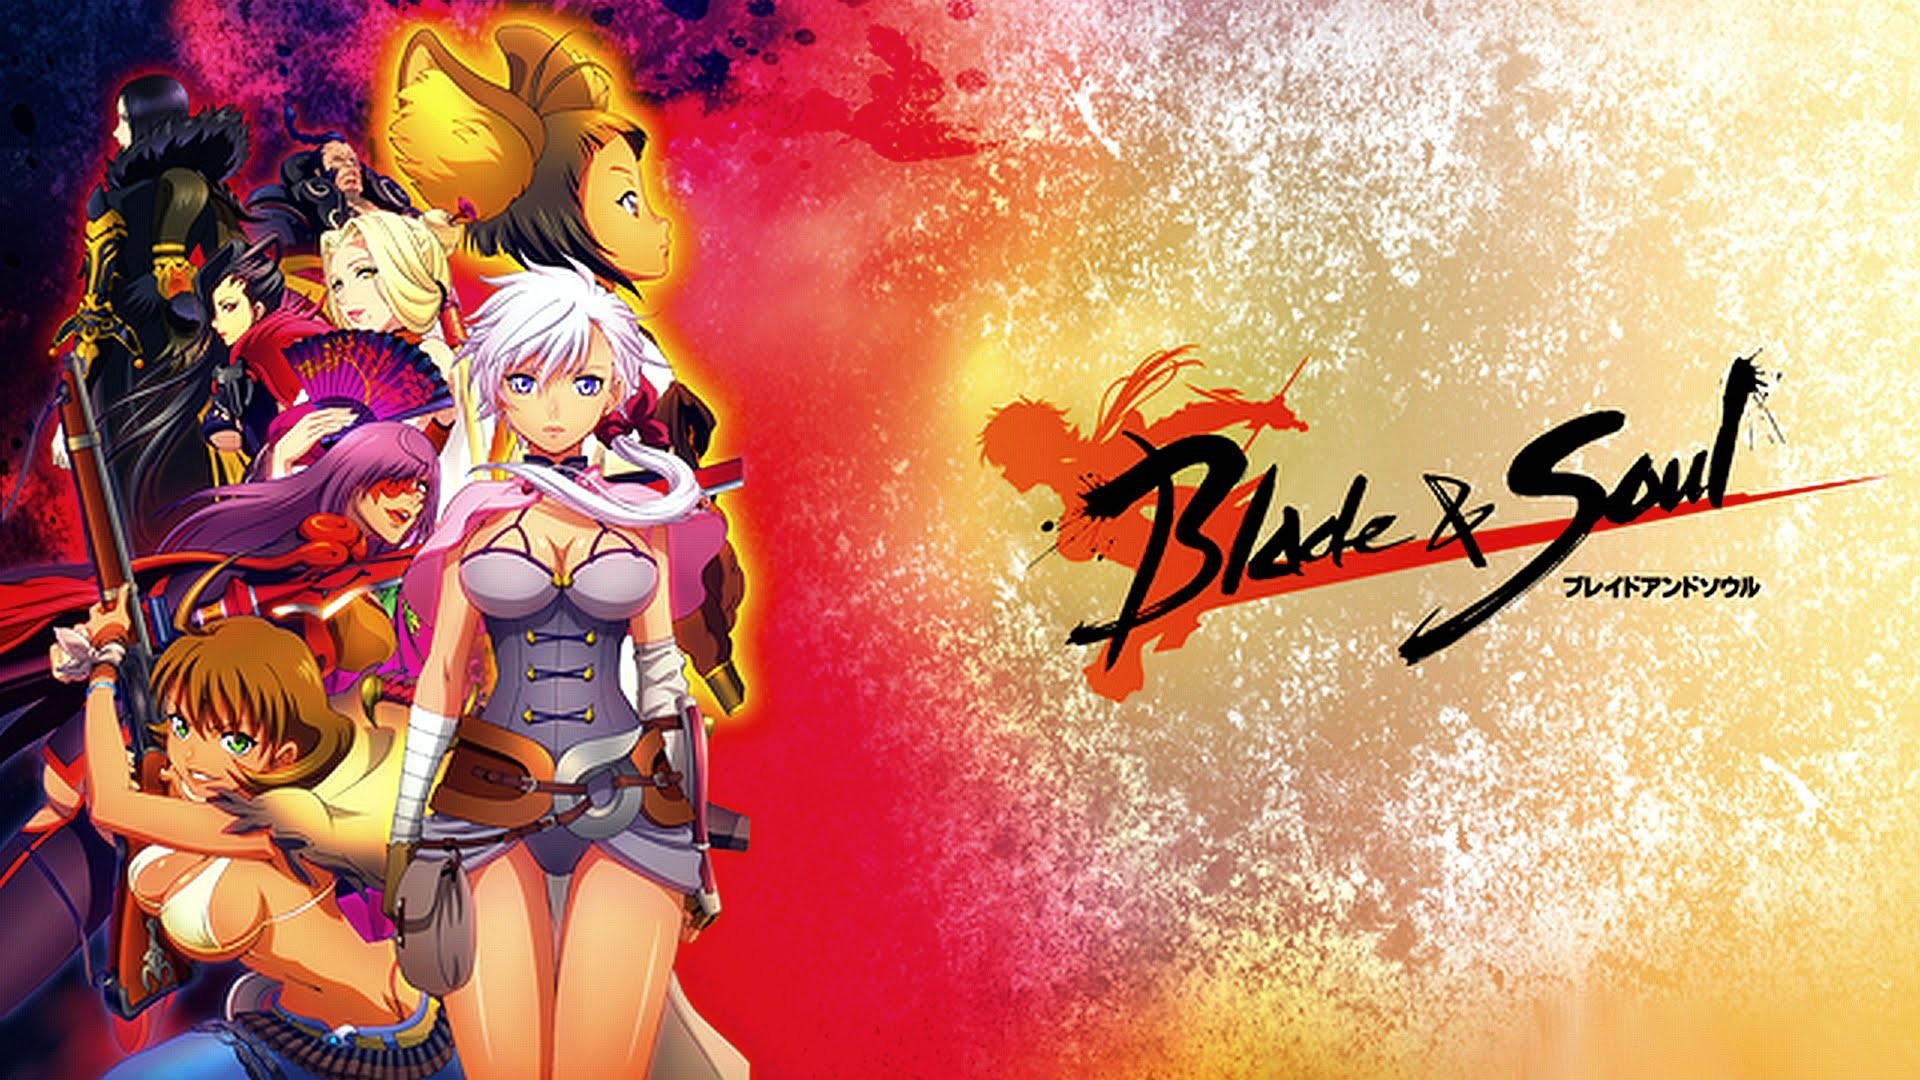 Blade And Soul Wallpaper: Blade And Soul Anime Wallpaper HD (76+ Images